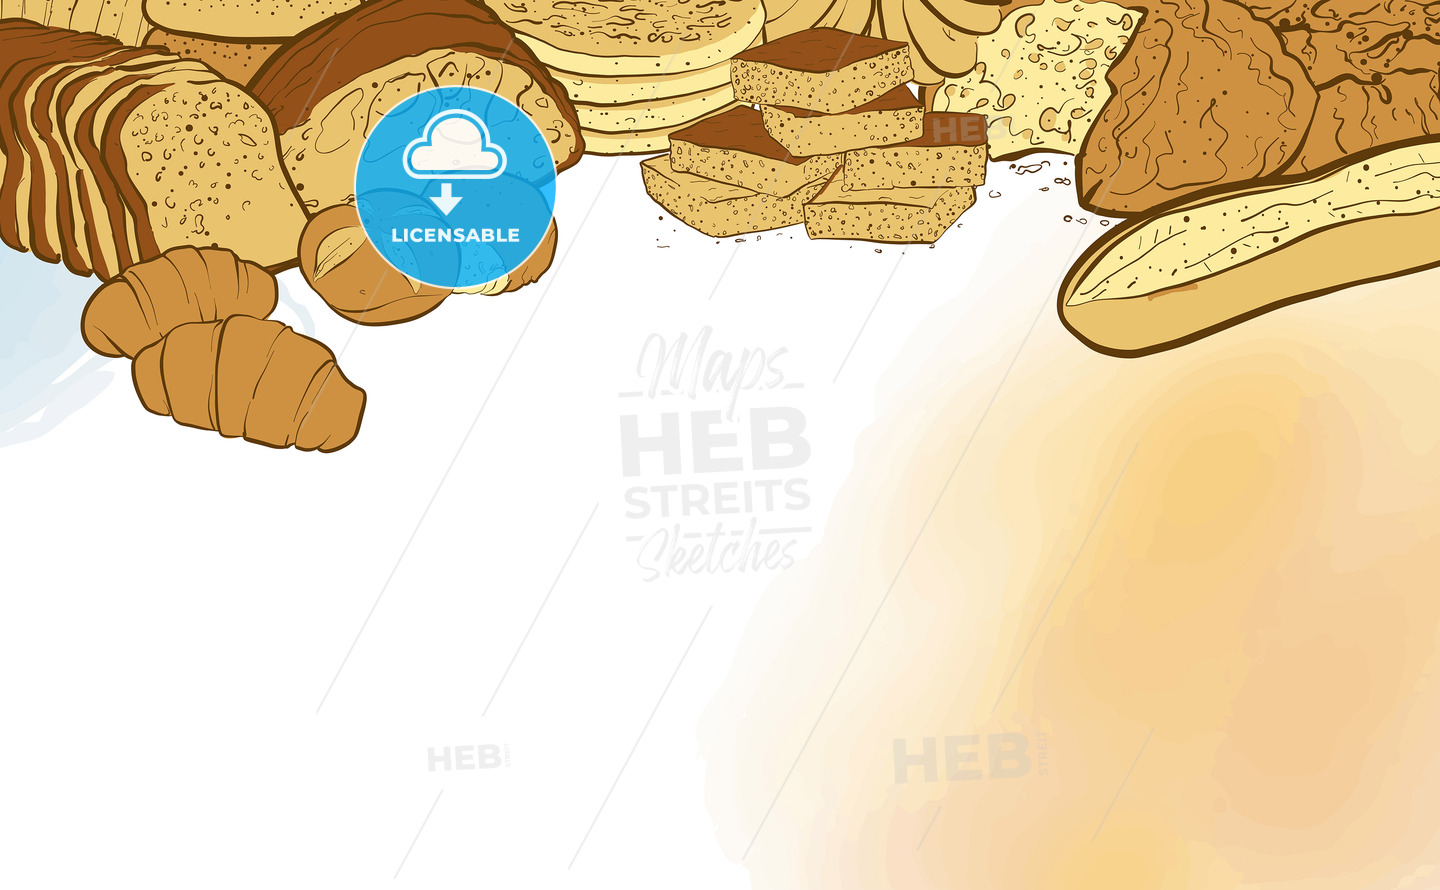 bakery breads banner with watercolor background